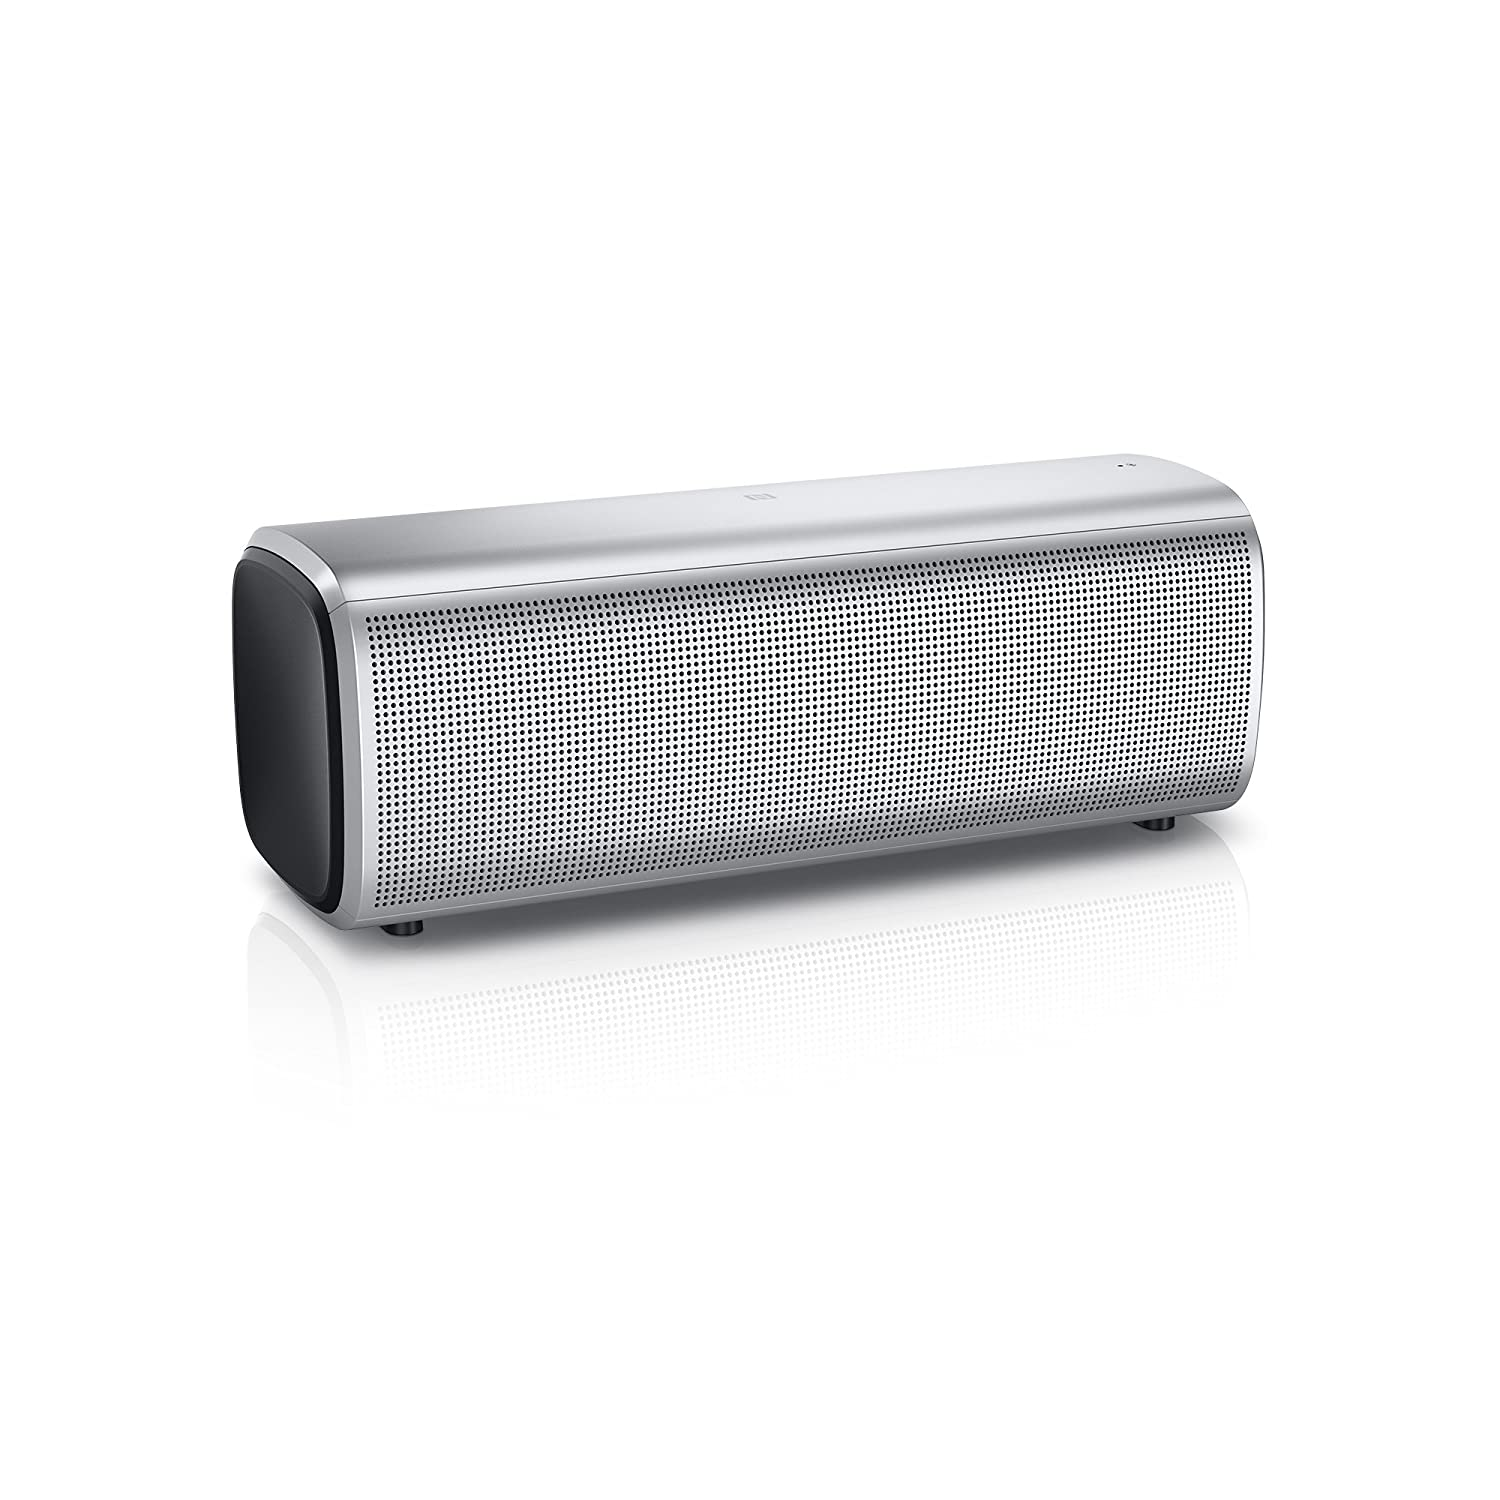 Amazon.in: Buy Dell Bluetooth Portable Speaker AD8 Online at Low